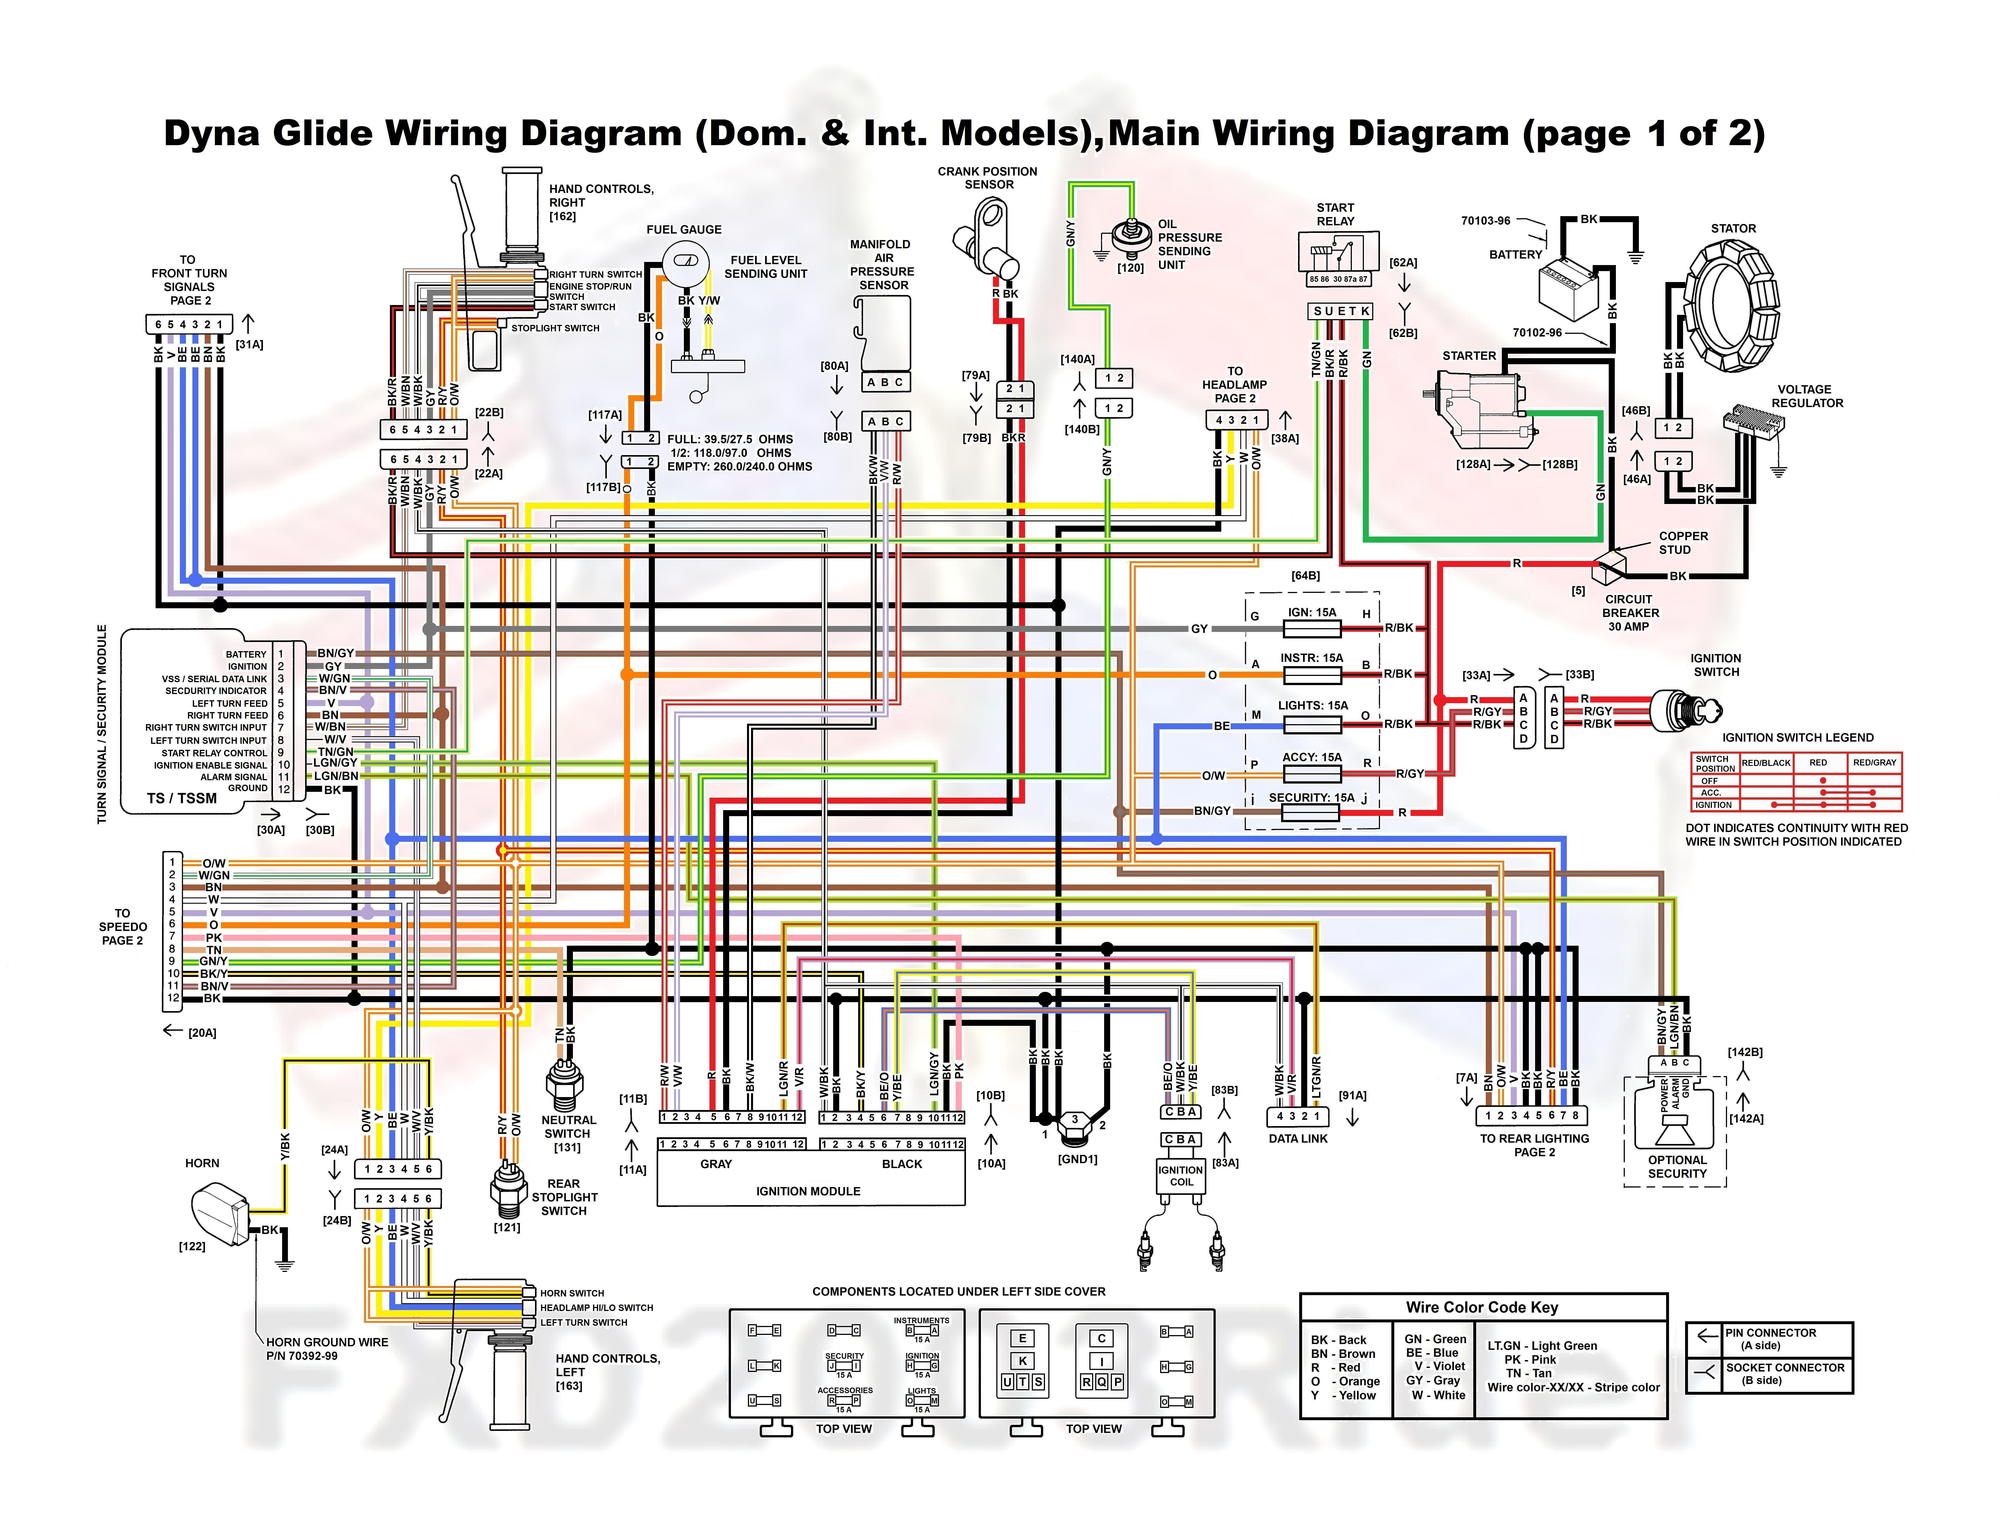 2007 Chevy Van Wire Diagram Starting Know About Wiring 2003 Express Starter Fuse Question Harley Davidson Forums Alarm